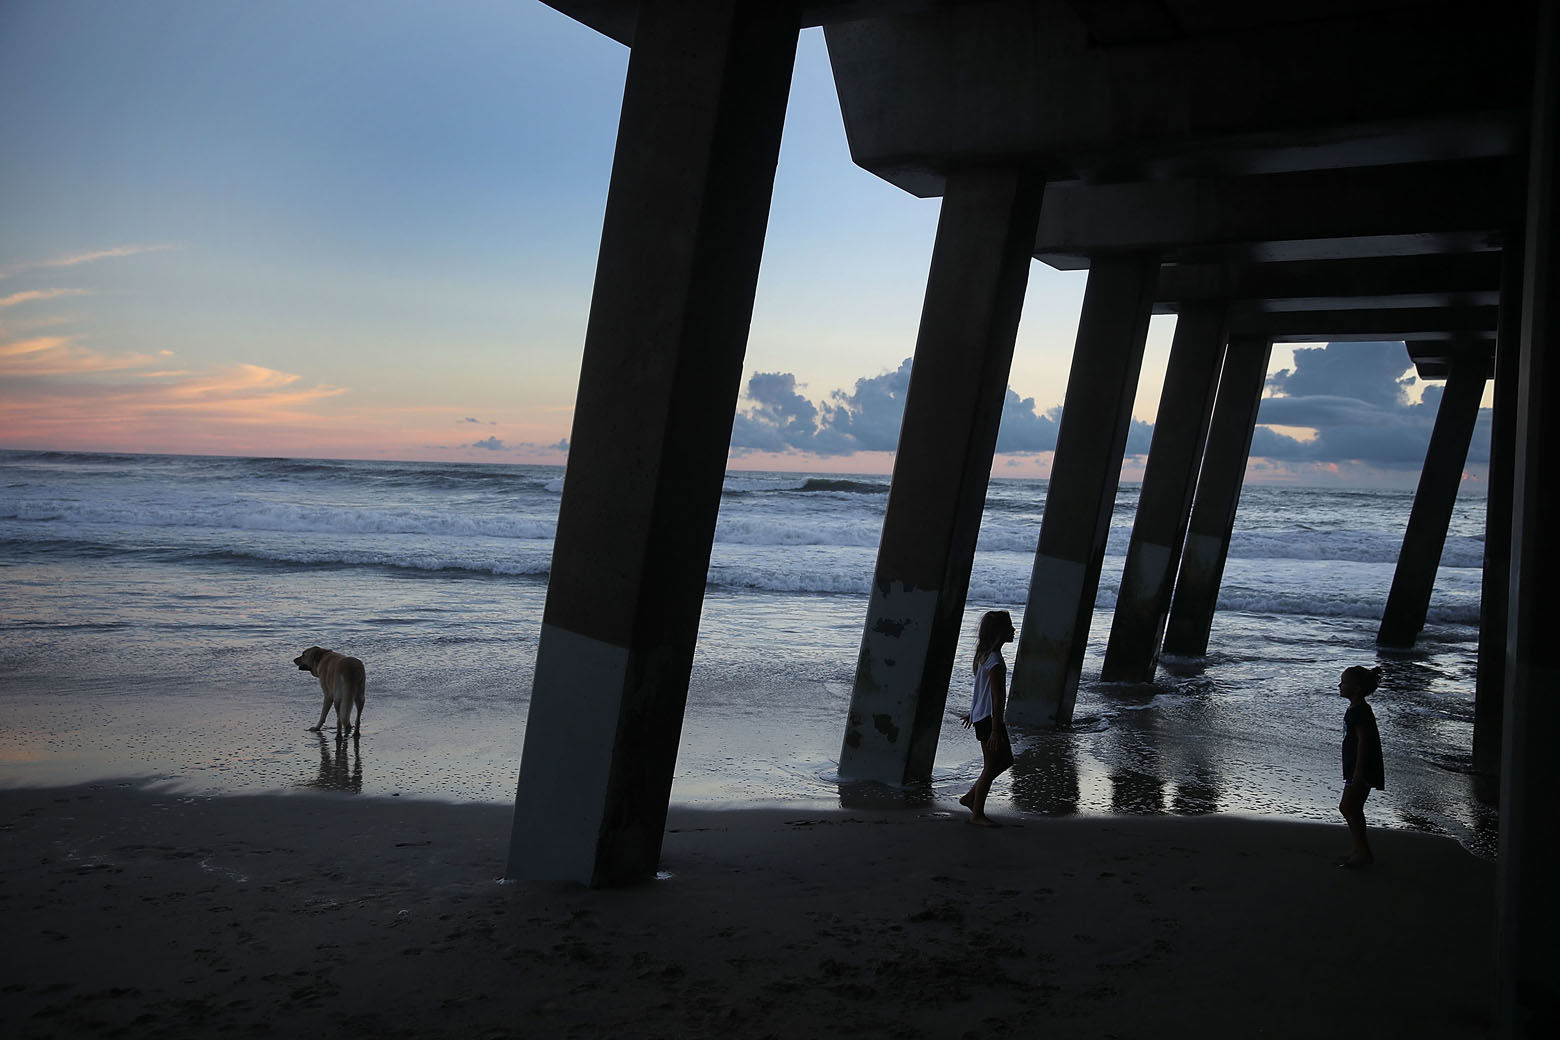 NAGS HEAD, NC - SEPTEMBER 12:  Charlotte Miller and Lilly Miller (L-R) visit the beach ahead of the arrival of Hurricane Florence on September 12, 2018 in Nags Head, North Carolina. Hurricane Florence is expected on Friday possibly as a category 4 storm along the Virginia, North Carolina and South Carolina coastline.  (Photo by Joe Raedle/Getty Images)